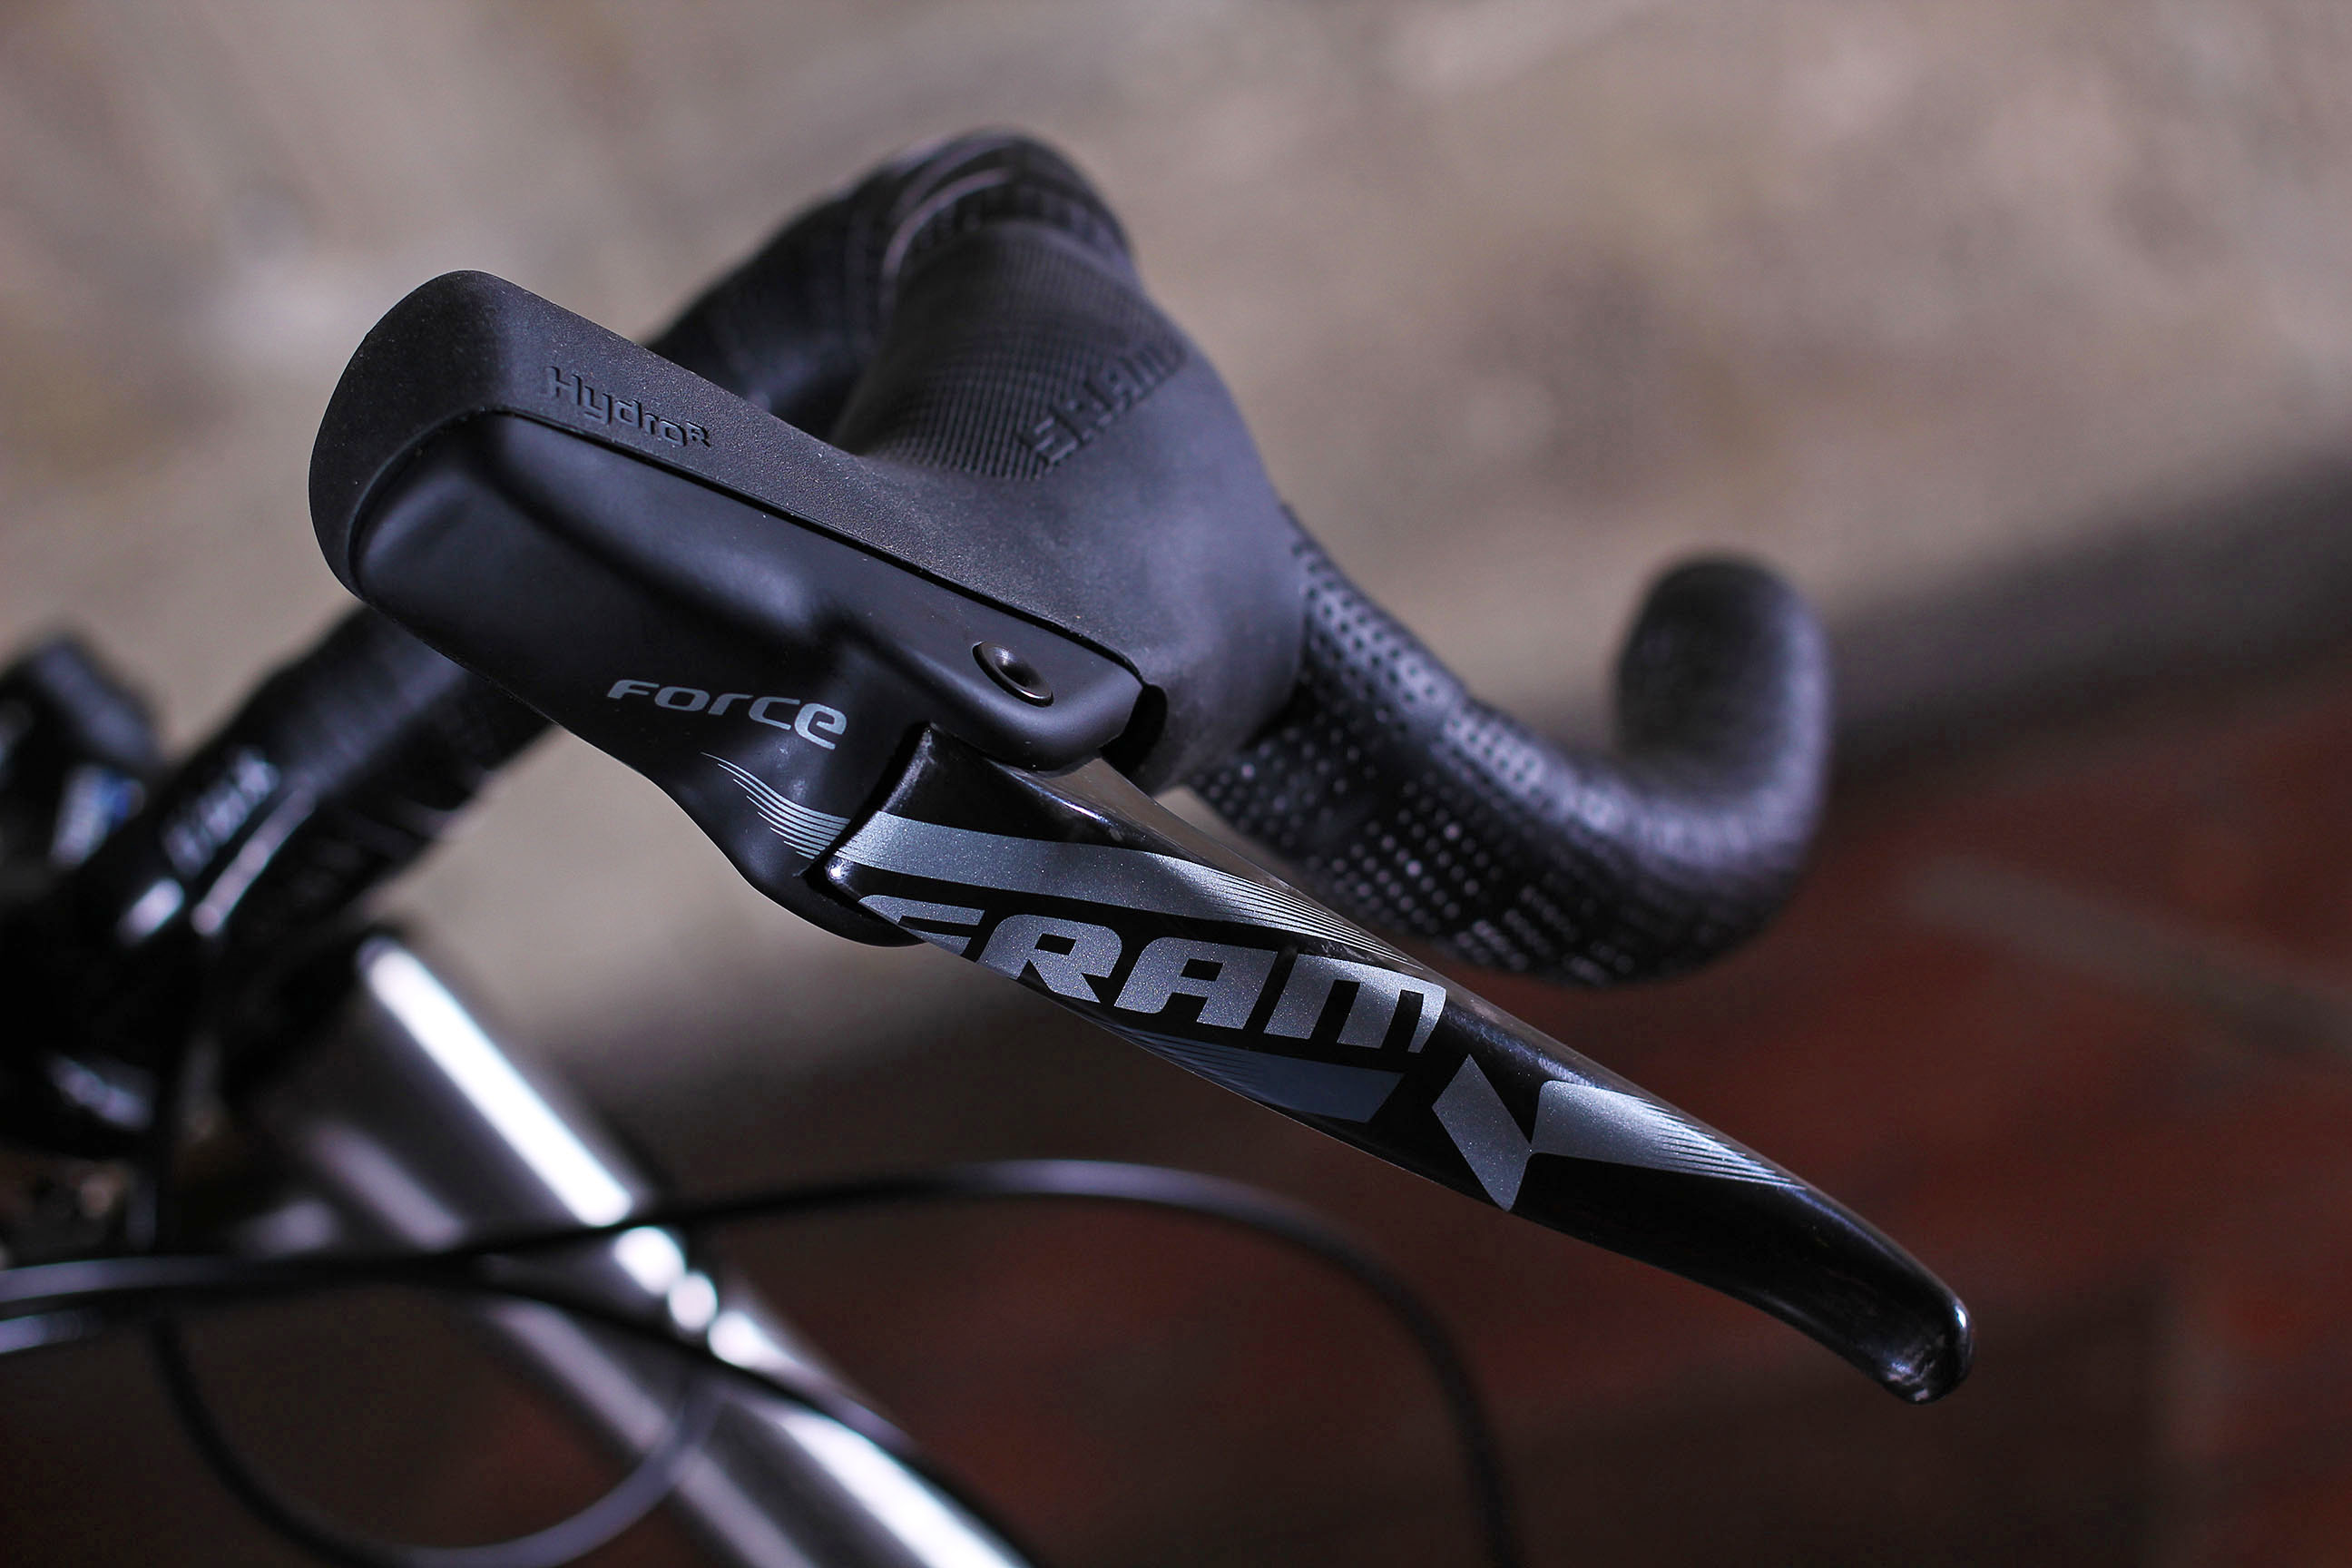 SRAM RIVAL 1 Road Bike Mechanical Brake Lever for Single Chainring Left Side